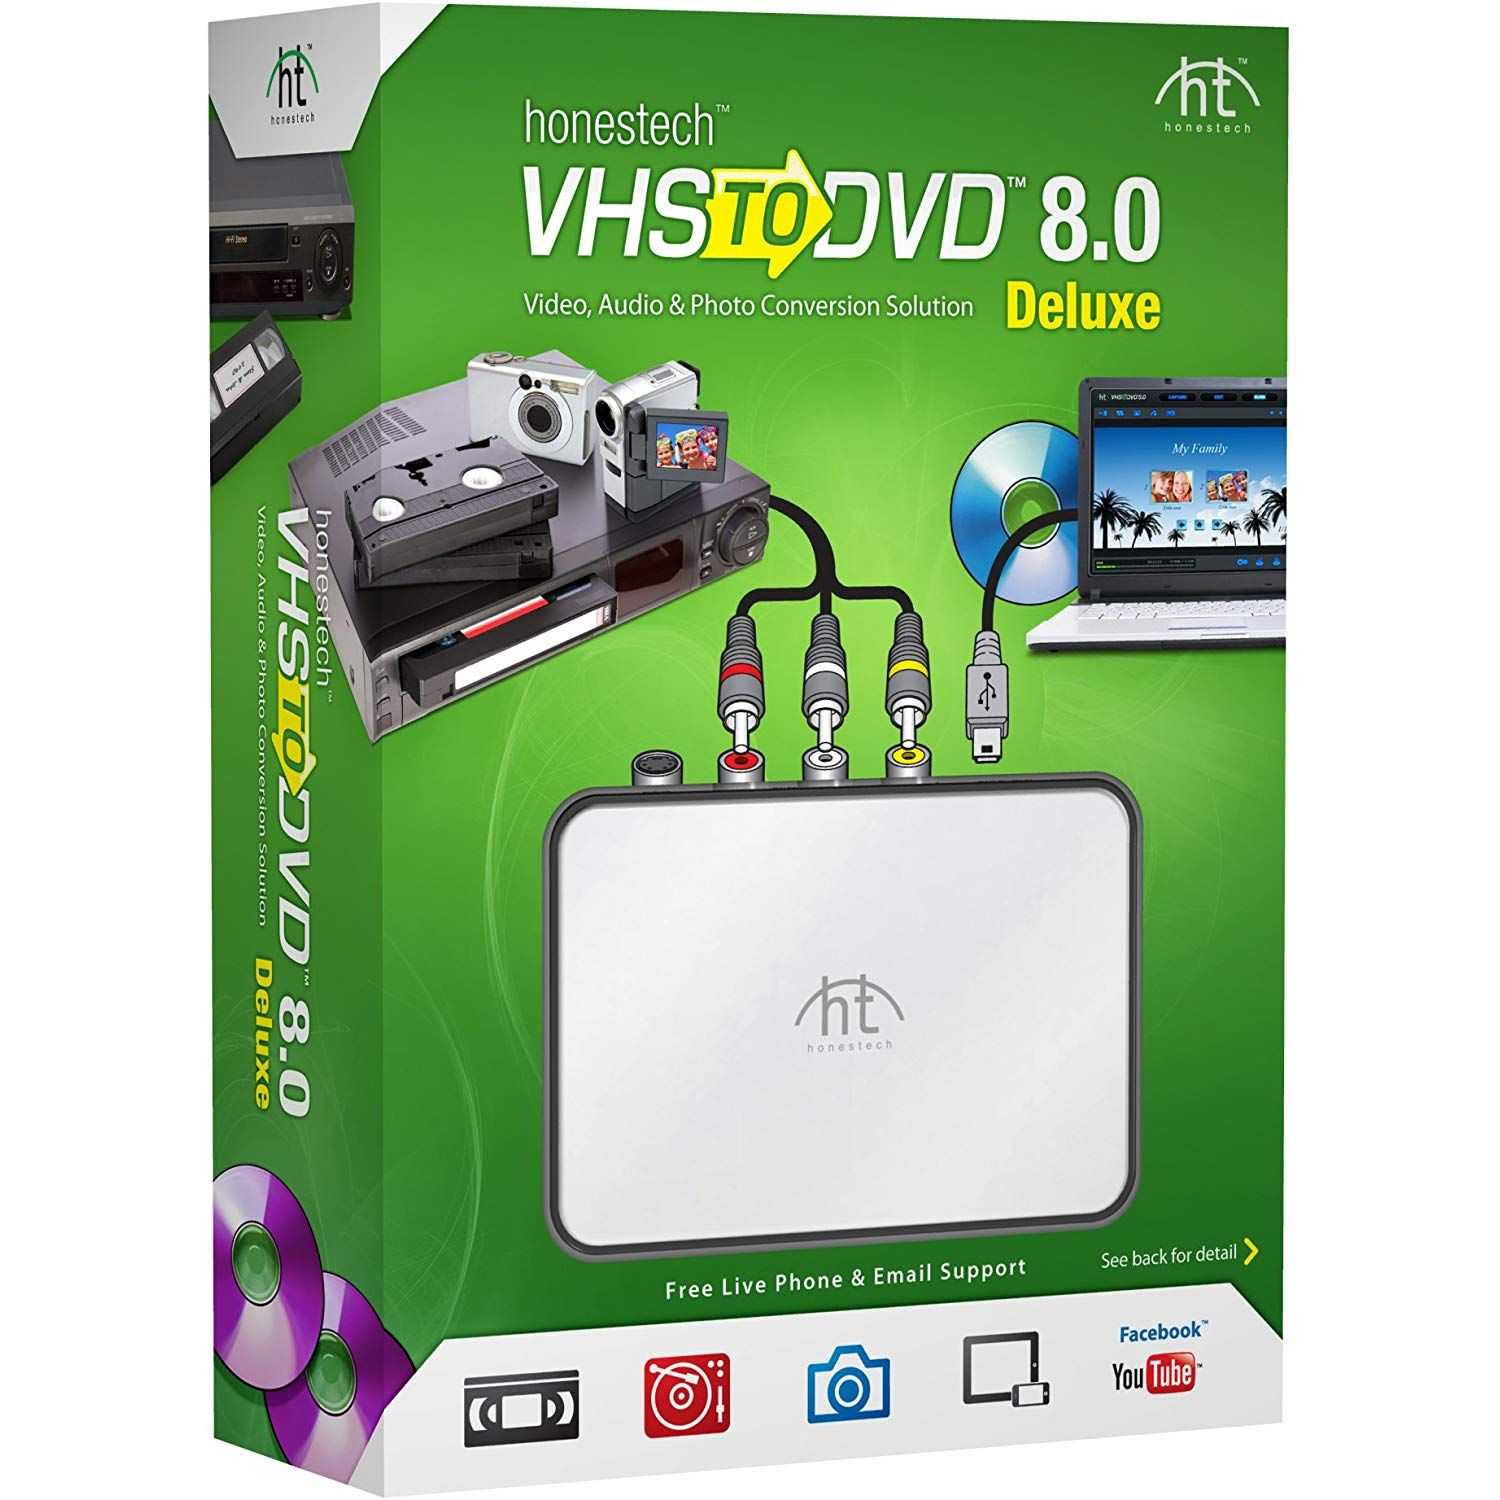 7d22793d3918e4fc83d28cccdaa7e02c - How Can I Get Videos Off My Phone To Dvd